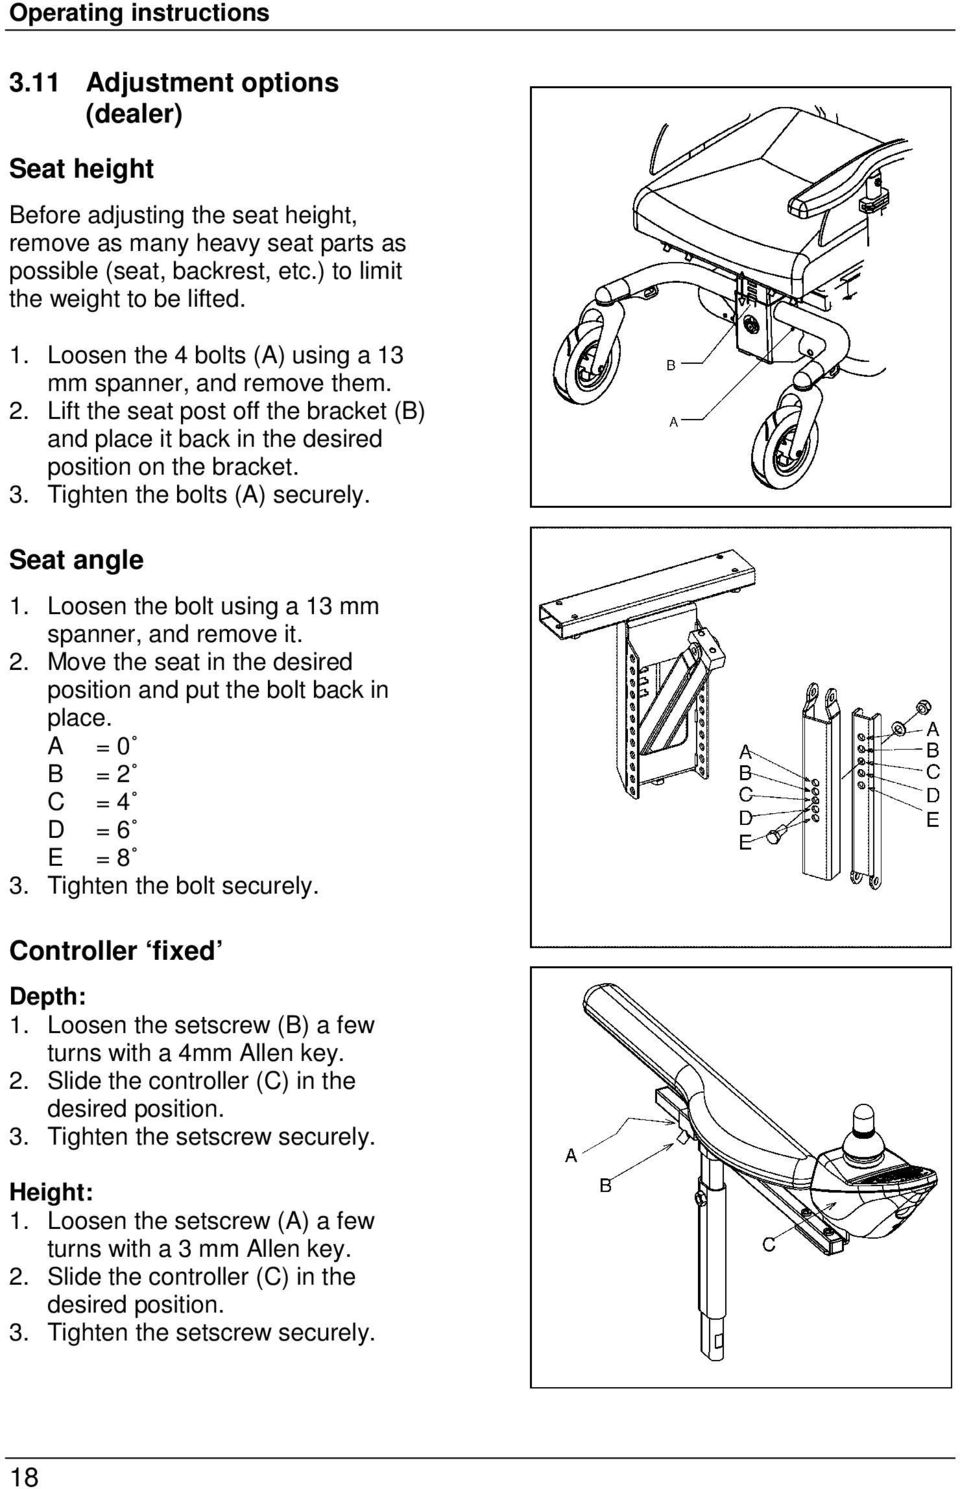 Lift the seat post off the bracket (B) and place it back in the desired position on the bracket. 3. Tighten the bolts (A) securely. Seat angle 1. Loosen the bolt using a 13 mm spanner, and remove it.